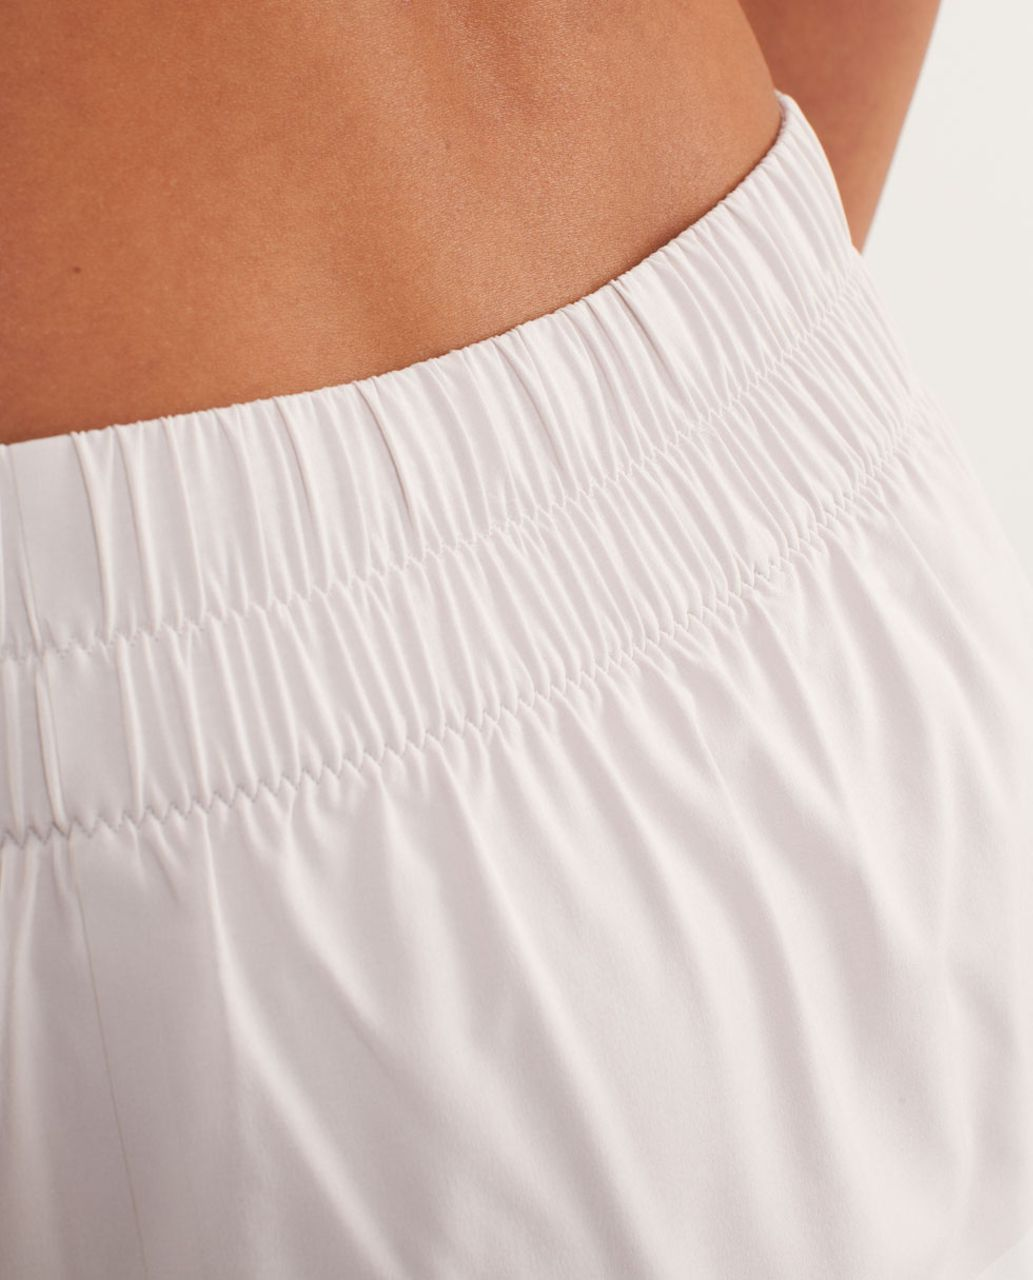 Lululemon Run:  Breeze By Skirt - Dune / White